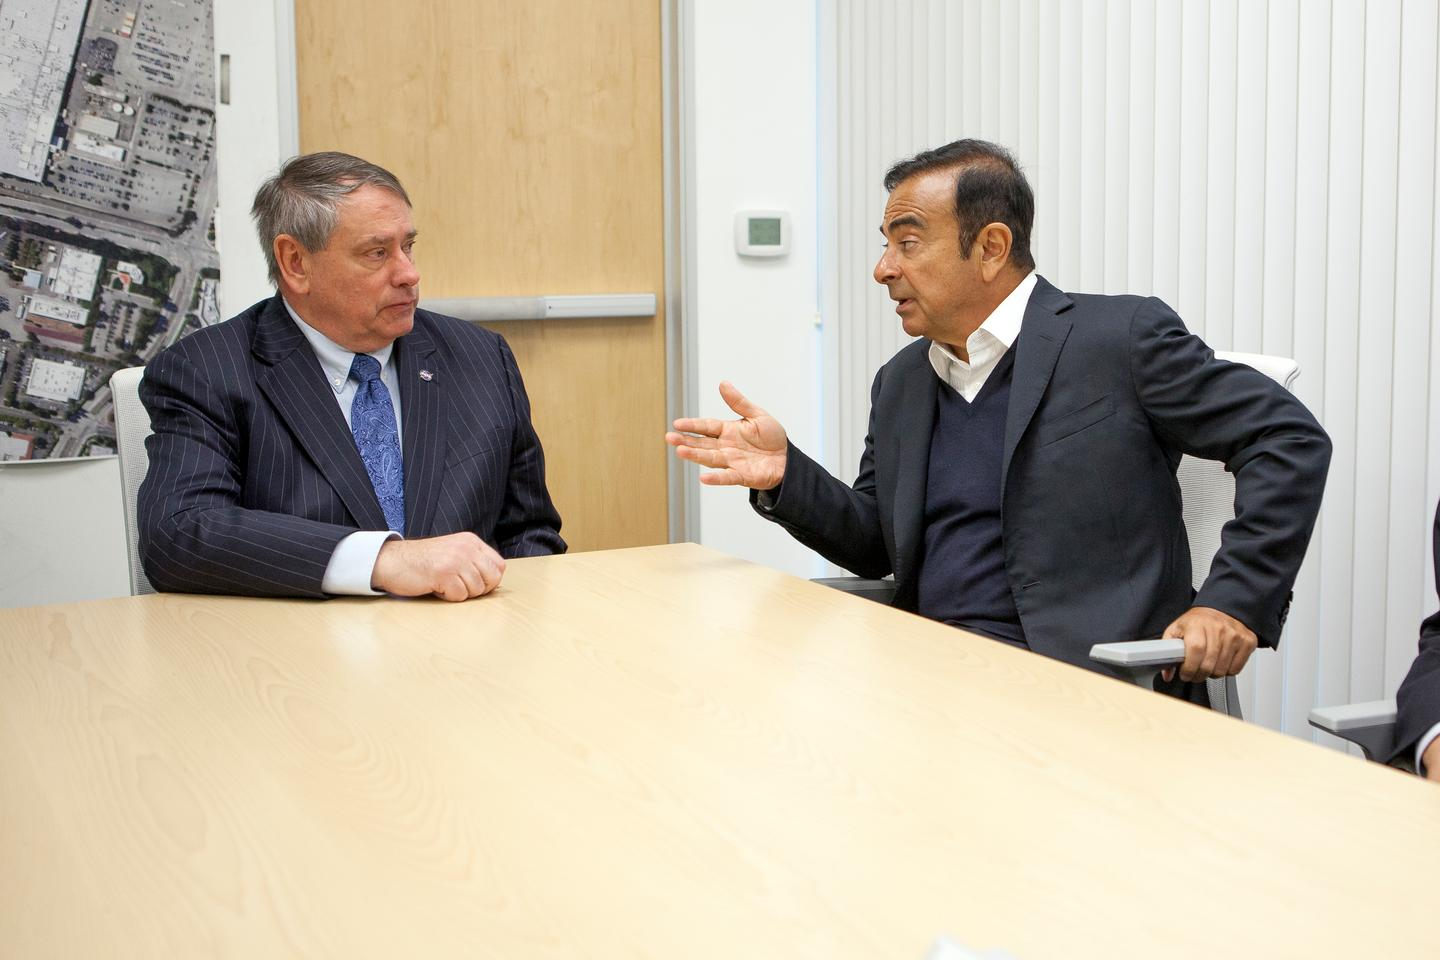 Ames director S. Peter Worden and Nissan CEO Carlos Ghosn (Image: Nissan)